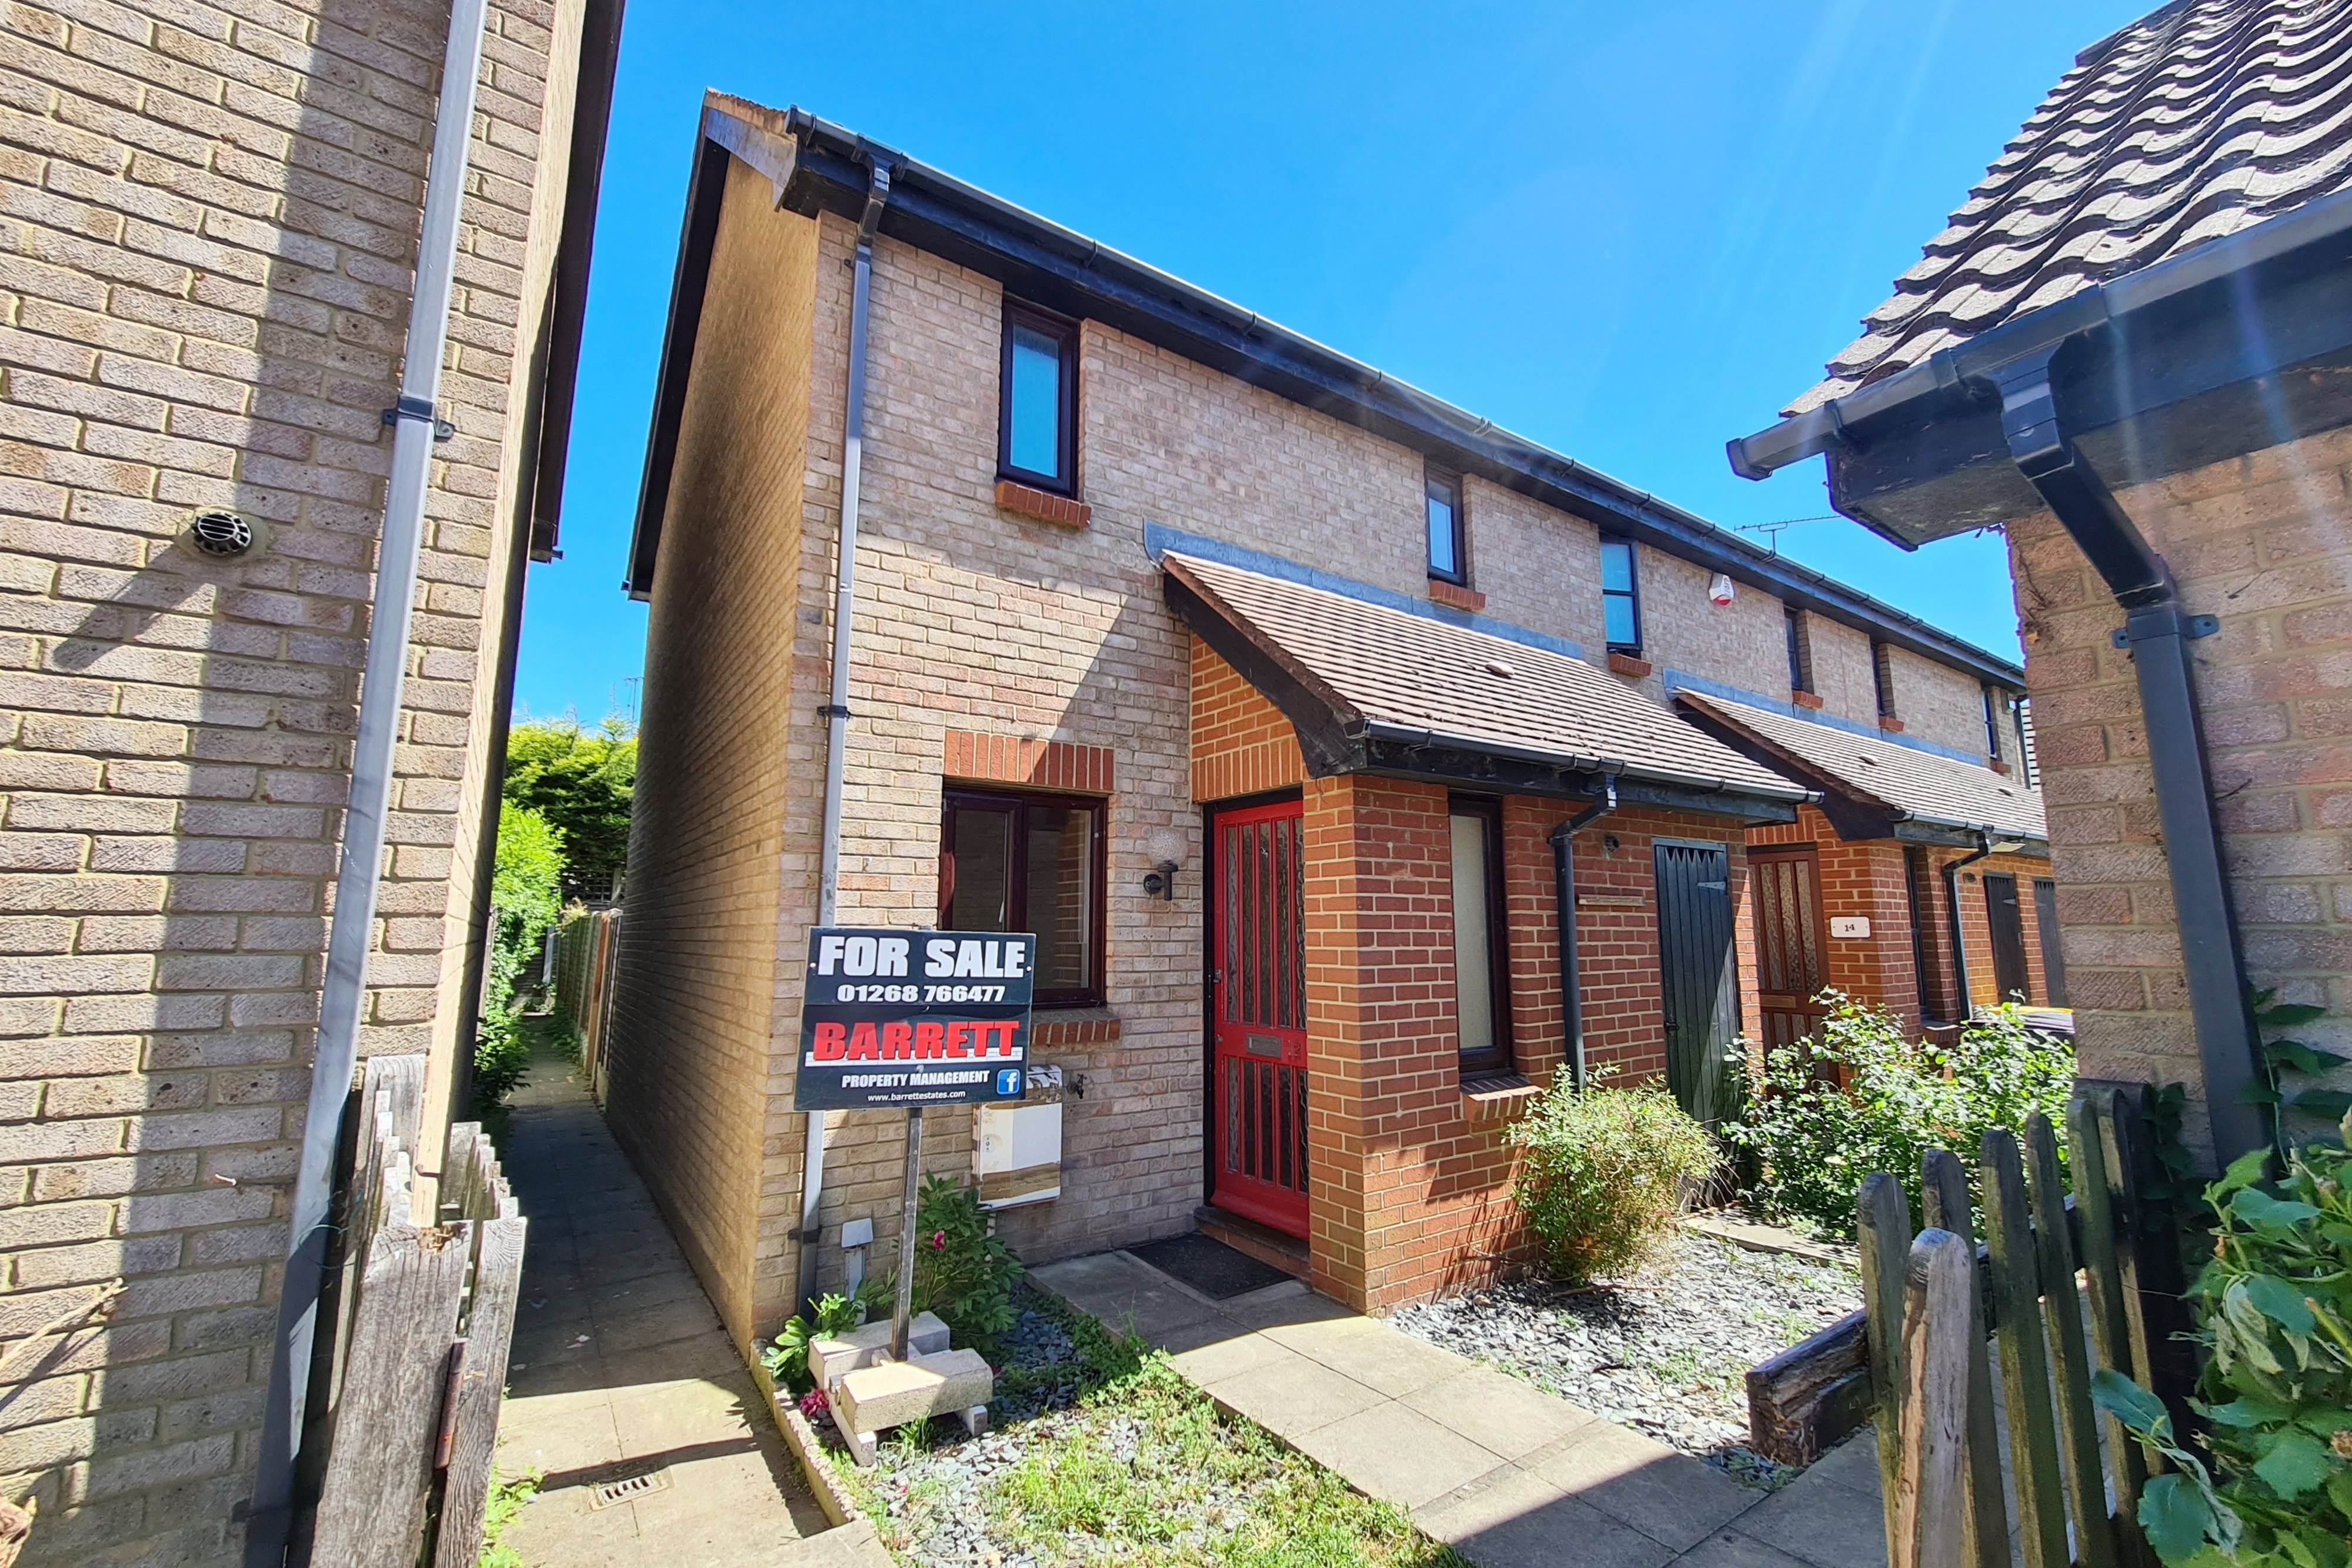 2 bed house for sale in Bristol Close, Rayleigh - Property Image 1